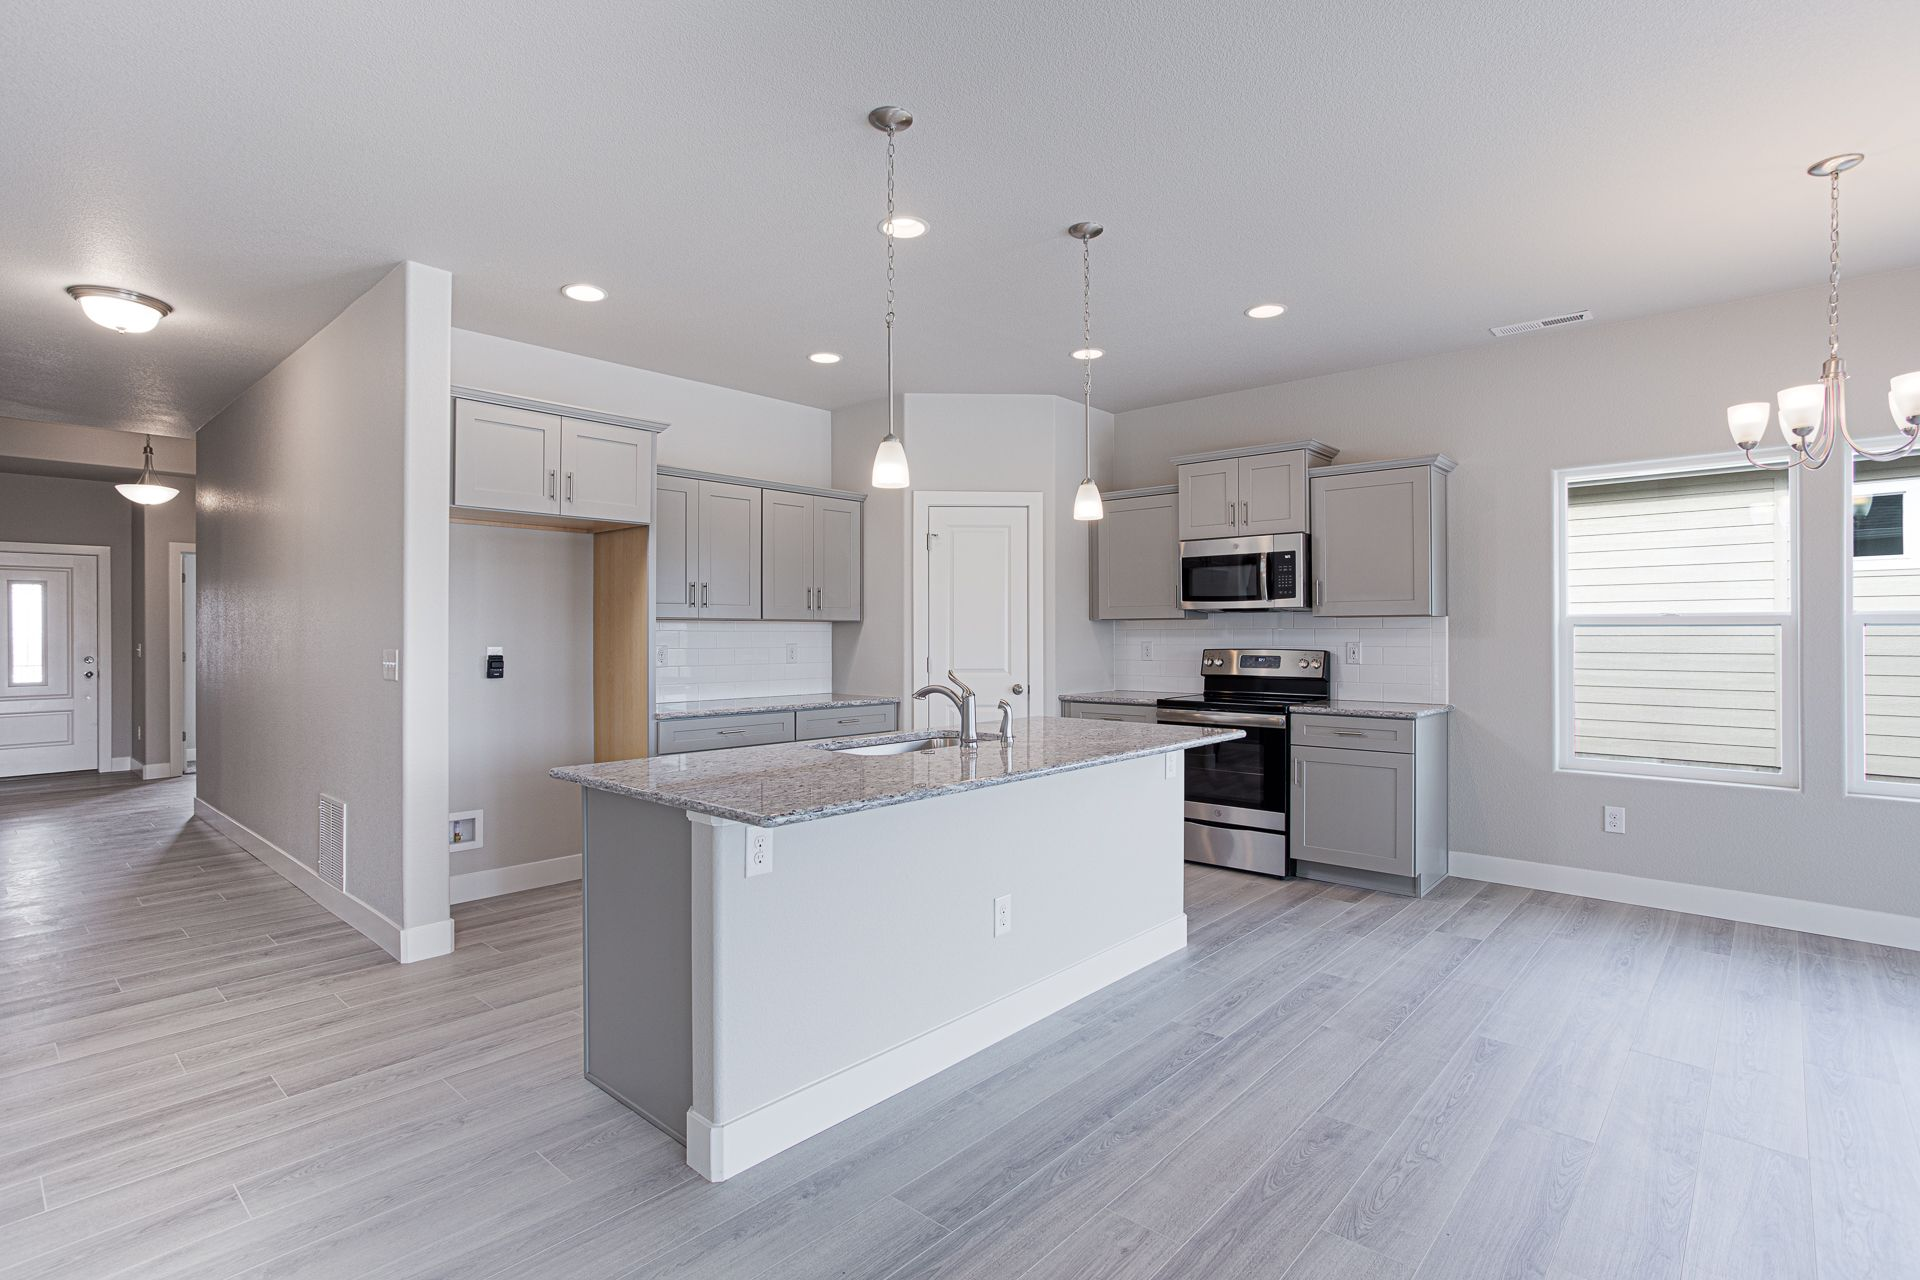 Kitchen featured in The Weisshorn By Challenger Homes in Colorado Springs, CO